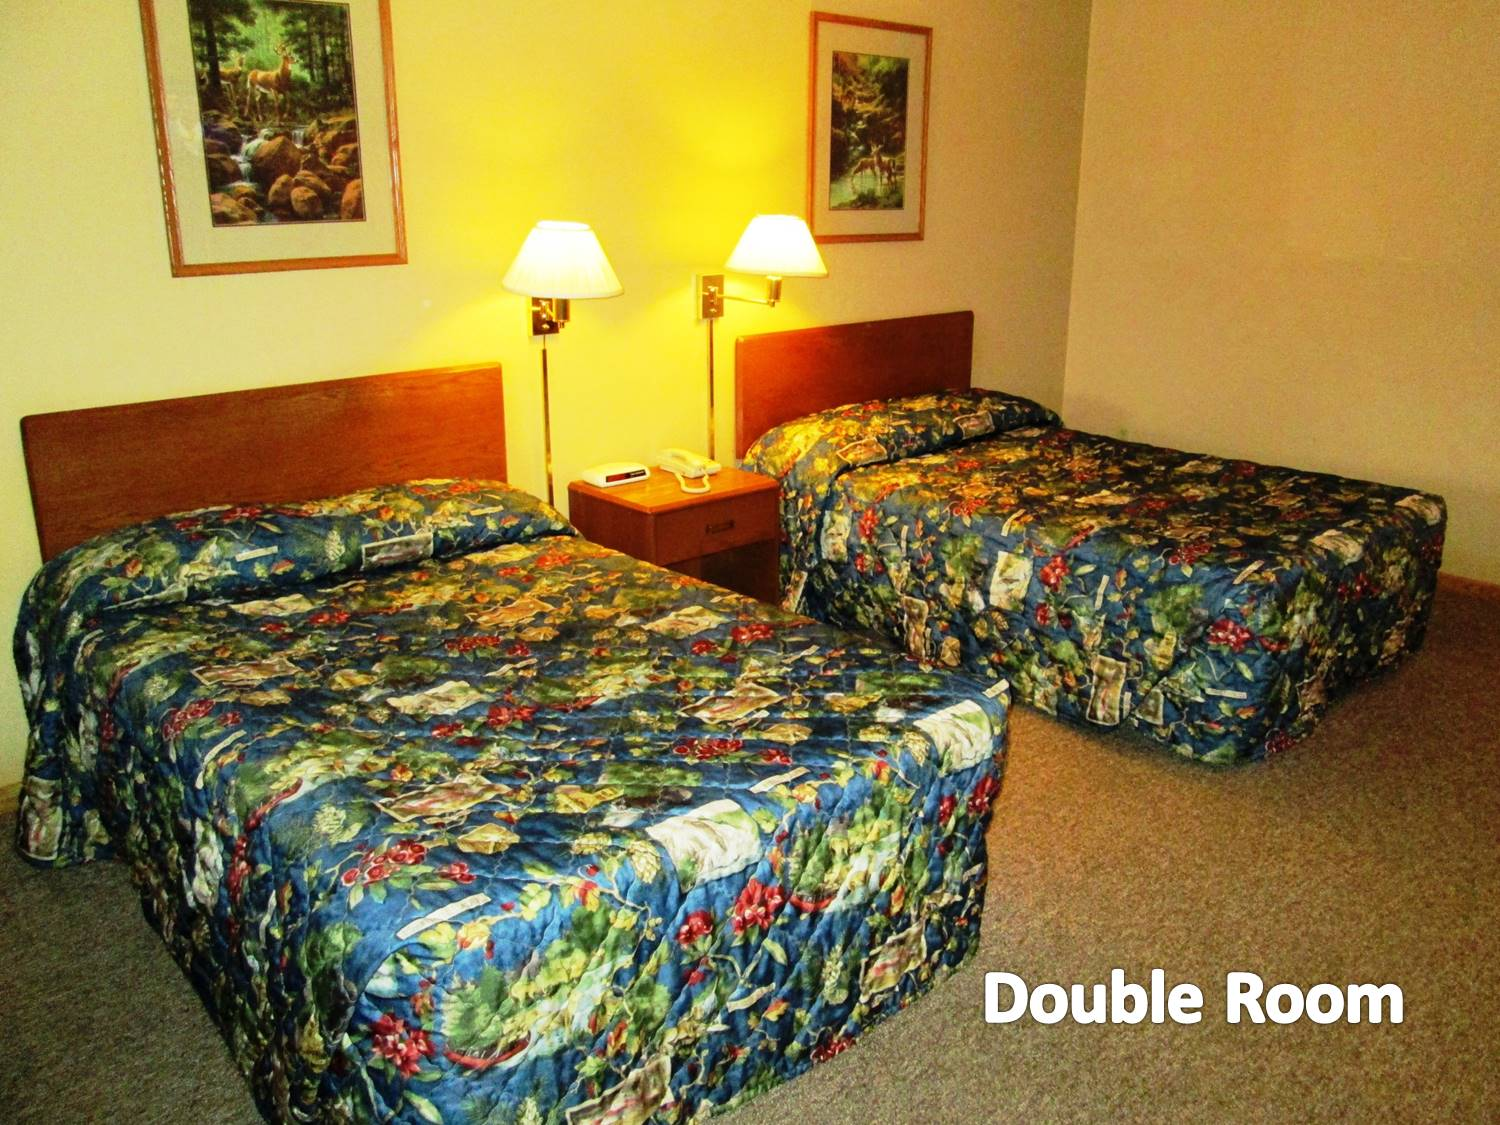 Room with two full-size beds and appropriate furnishings.